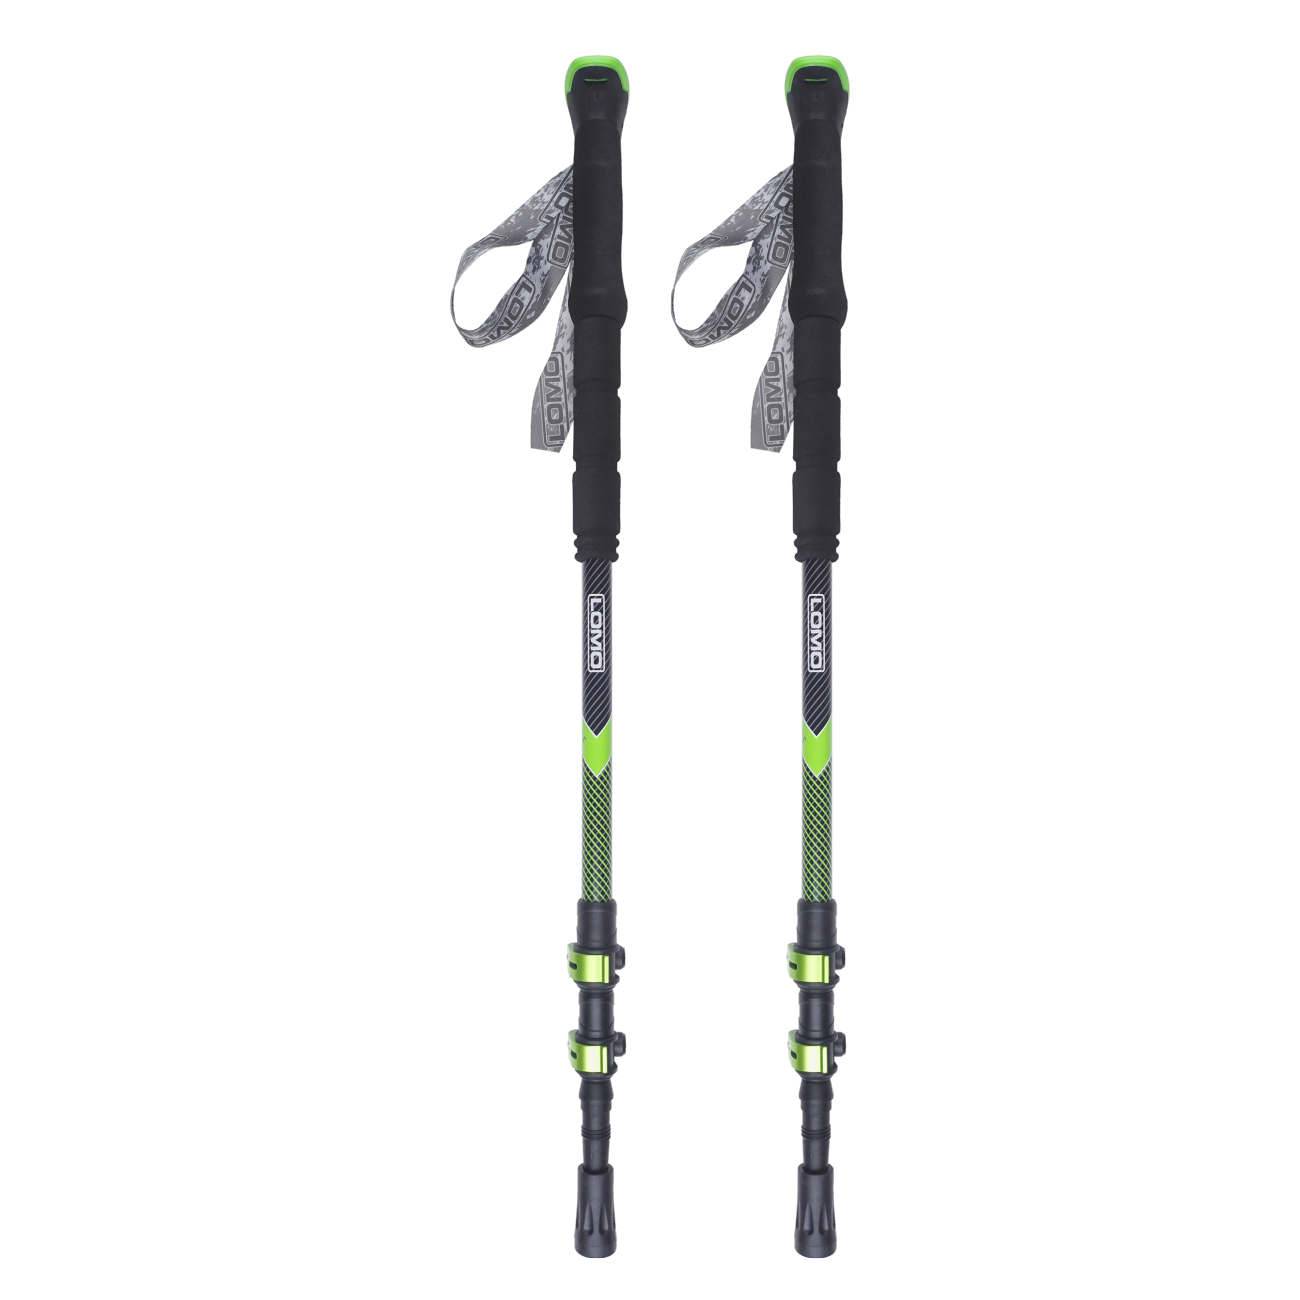 Aluminium Walking Poles - Pair